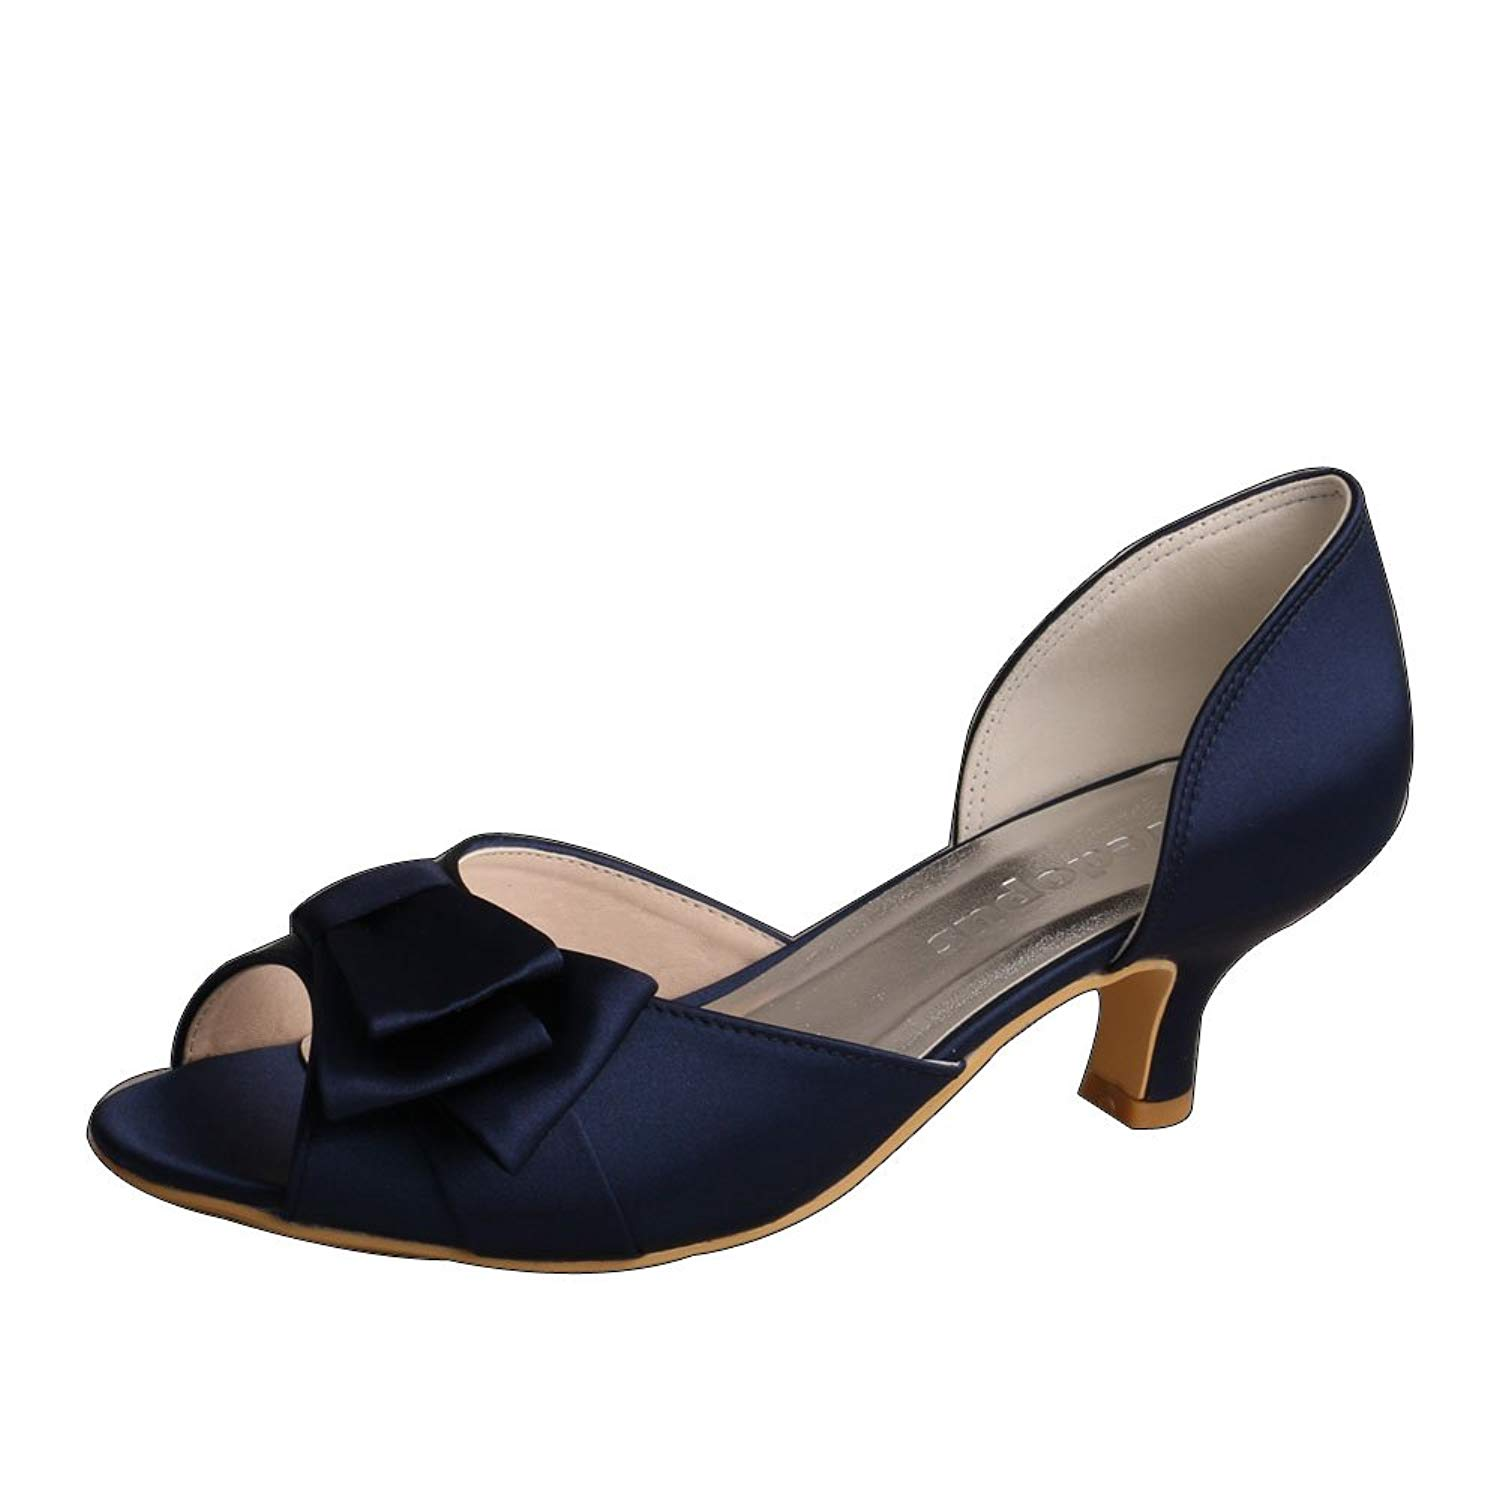 5490543fd96 Cheap Low Heels For Prom, find Low Heels For Prom deals on line at ...